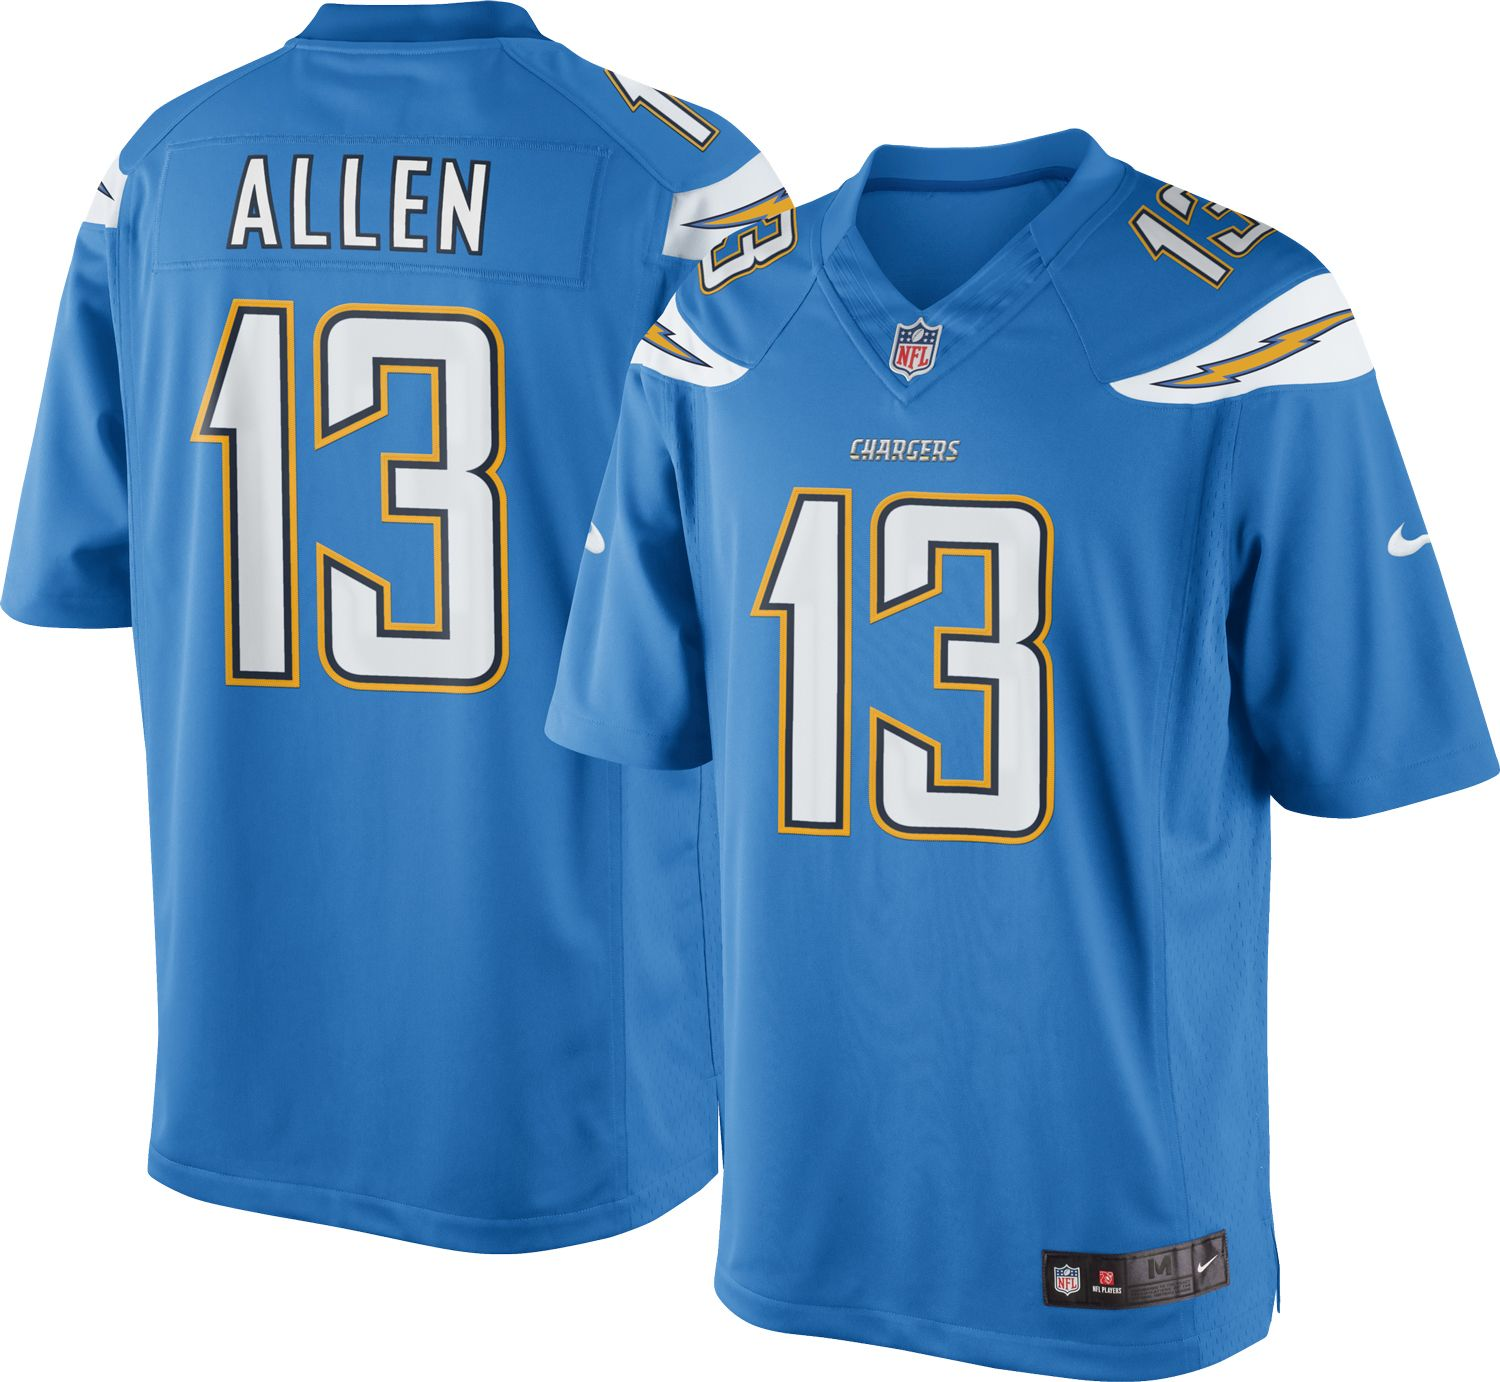 9ce1c2f7b5 ... Navy Blue Team Color Jersey Nike Mens Alternate Limited Jersey Los  Angeles Chargers Keen Keenan Allen Nike San ...